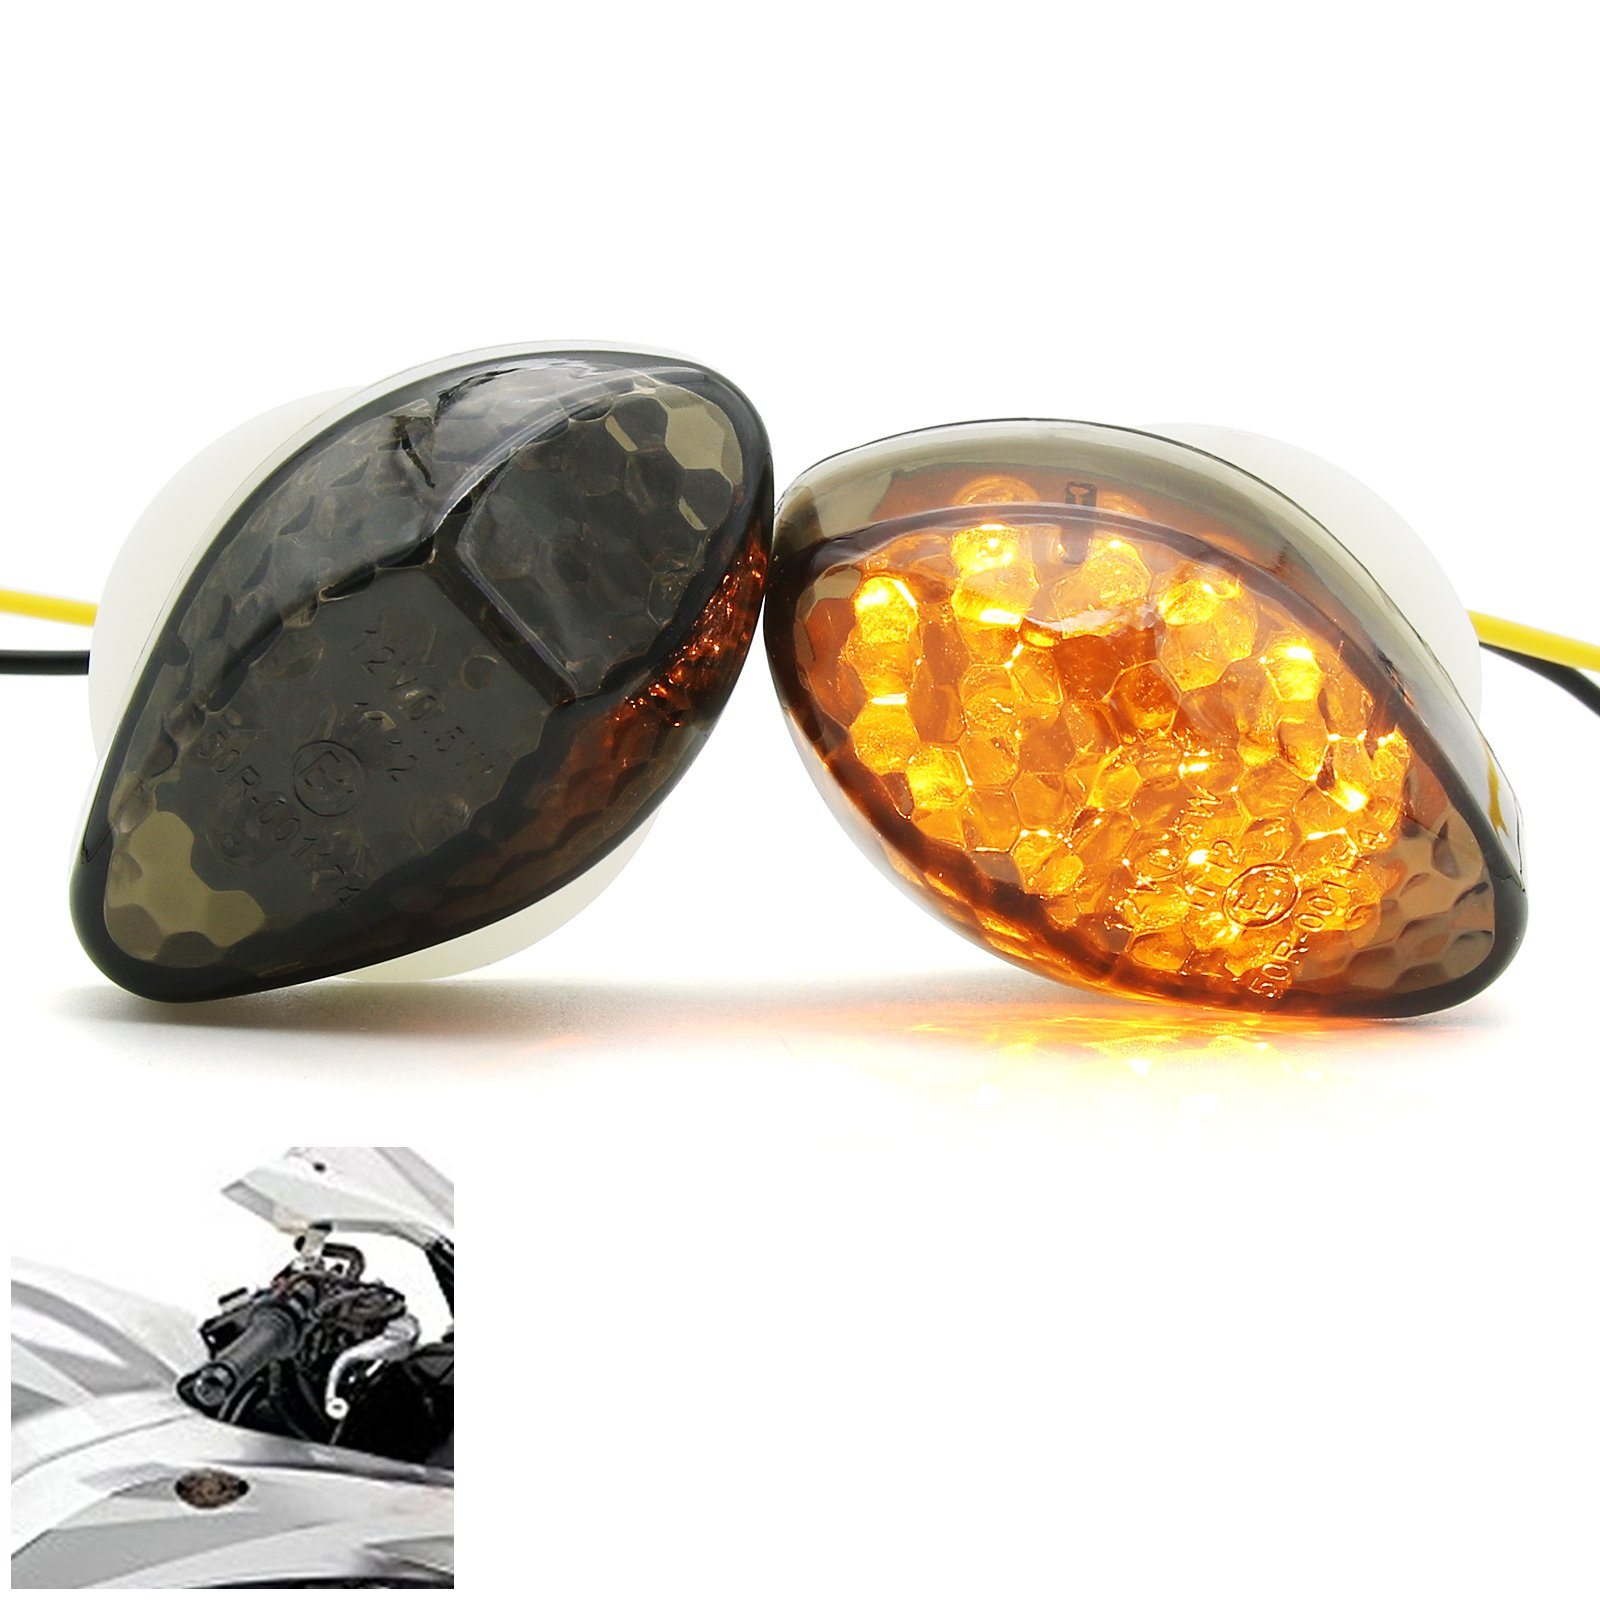 2Pcs Super Bright Motorcycle Front LED Flush Mount Turn Signal Light Blinker Side Maker Lamp for Honda CBR600RR CBR1000RR CBR600F3 CBR600F4 CBR600 F3 F4 F4I (Smoke)